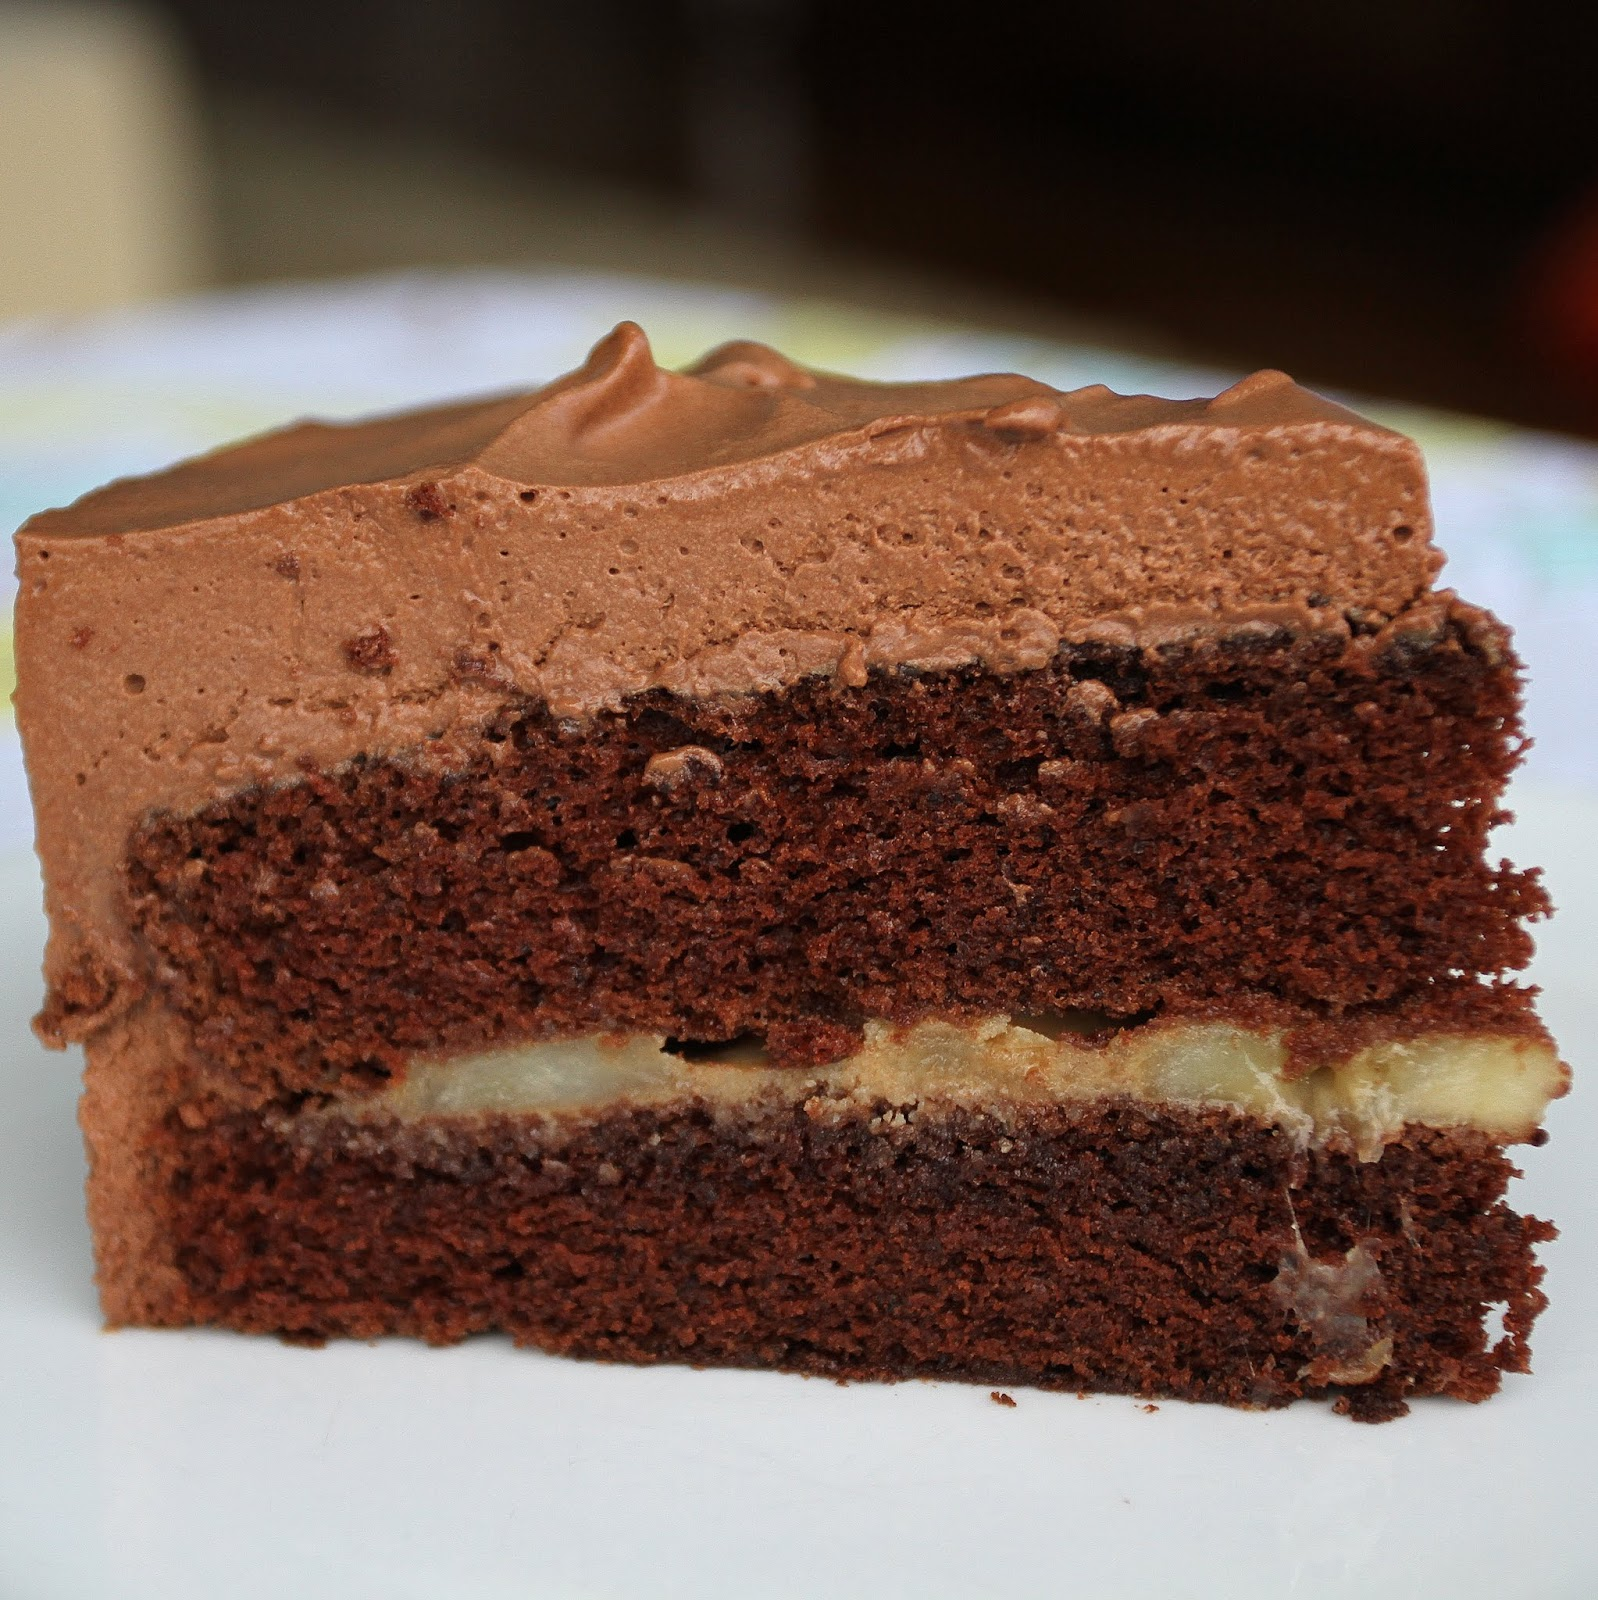 Chocolate mousse filling scene 2